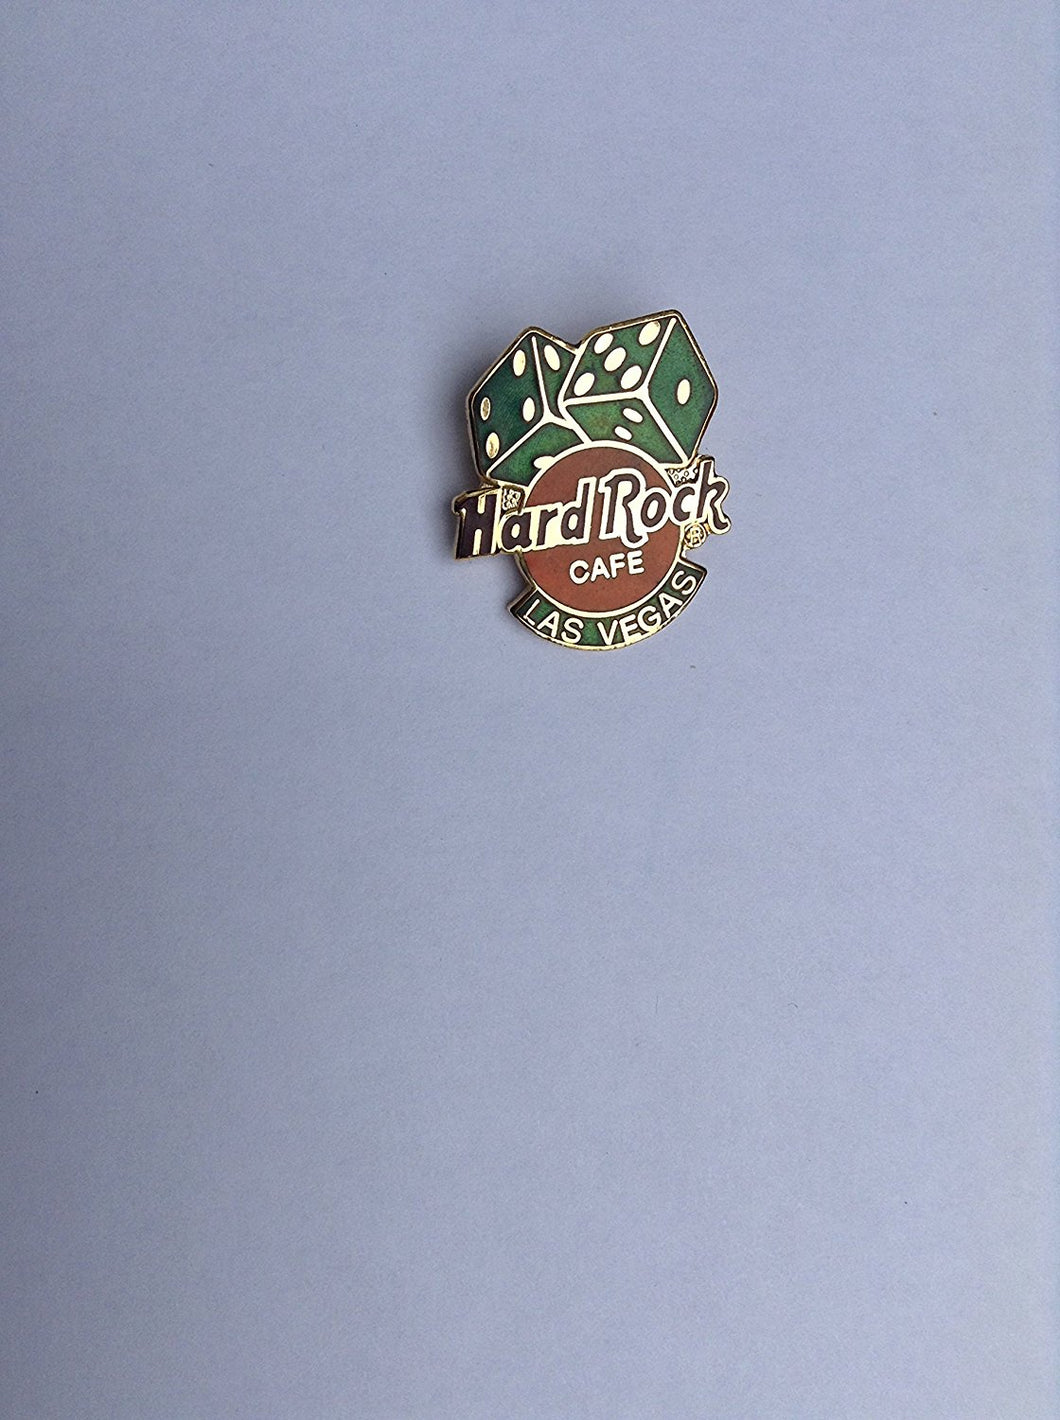 LAS VEGAS PIN WITH GREEN DICE HARD ROCK CAFÉ PIN B-11-4550 Mint condition collectable